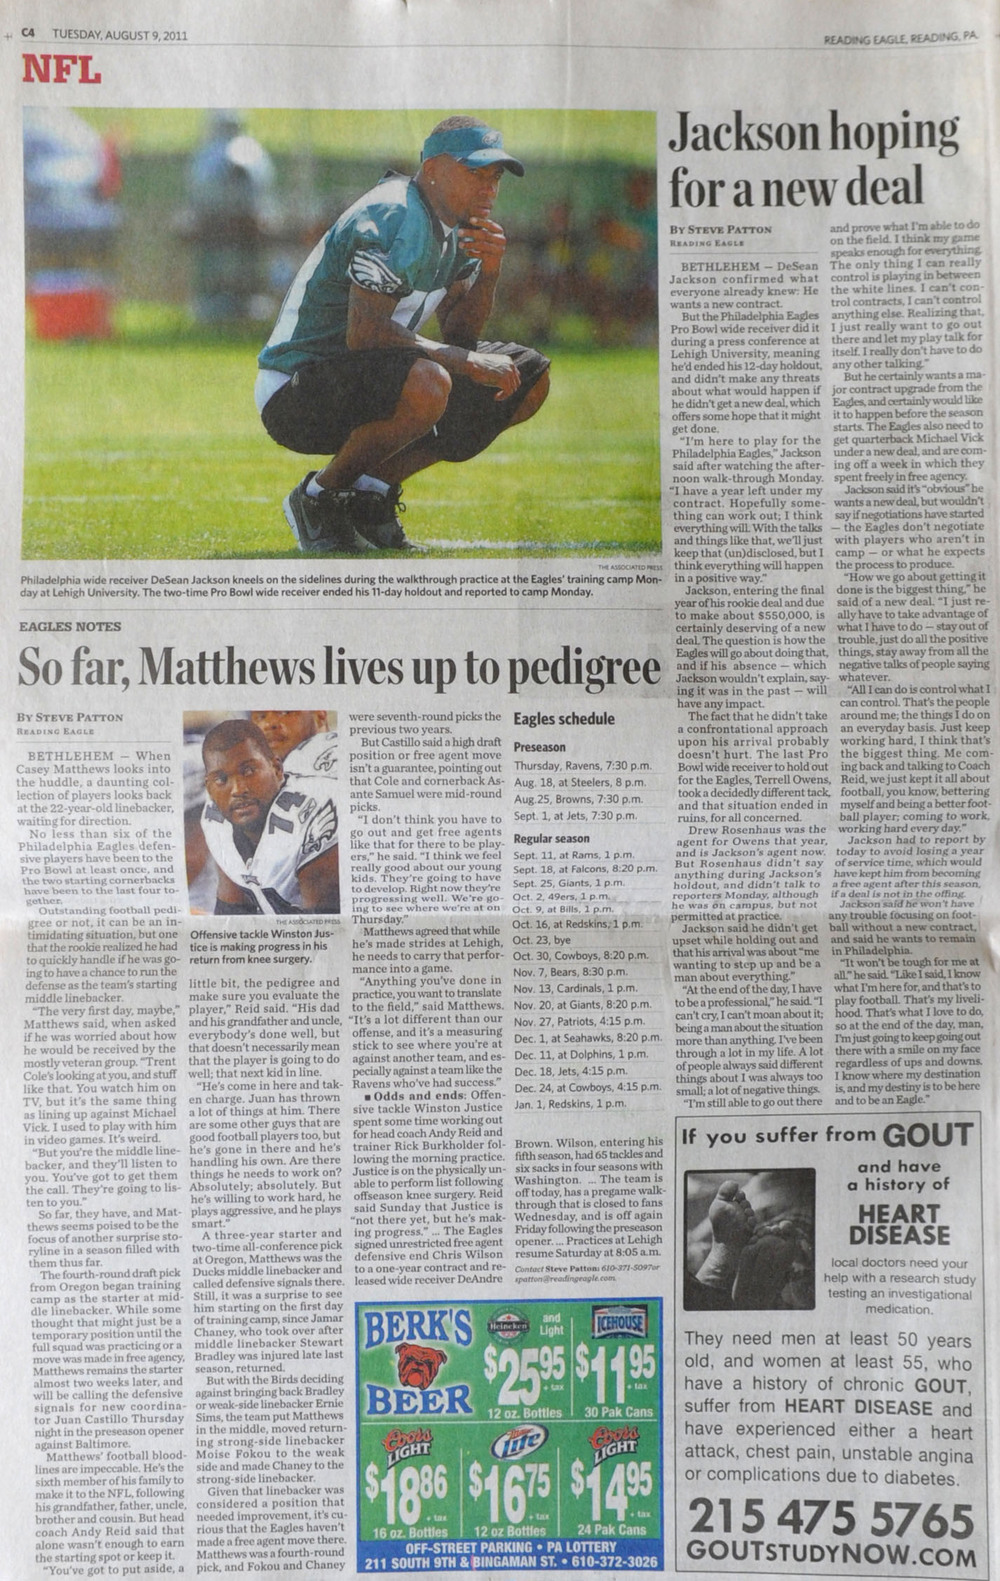 The Reading Eagle, Tuesday, August 9th, 2011. Eagles wide receiver DeSean Jackson made his first appearance at Training Camp Monday, August 8th, 2011 at Lehigh University after holding out for a new contract.